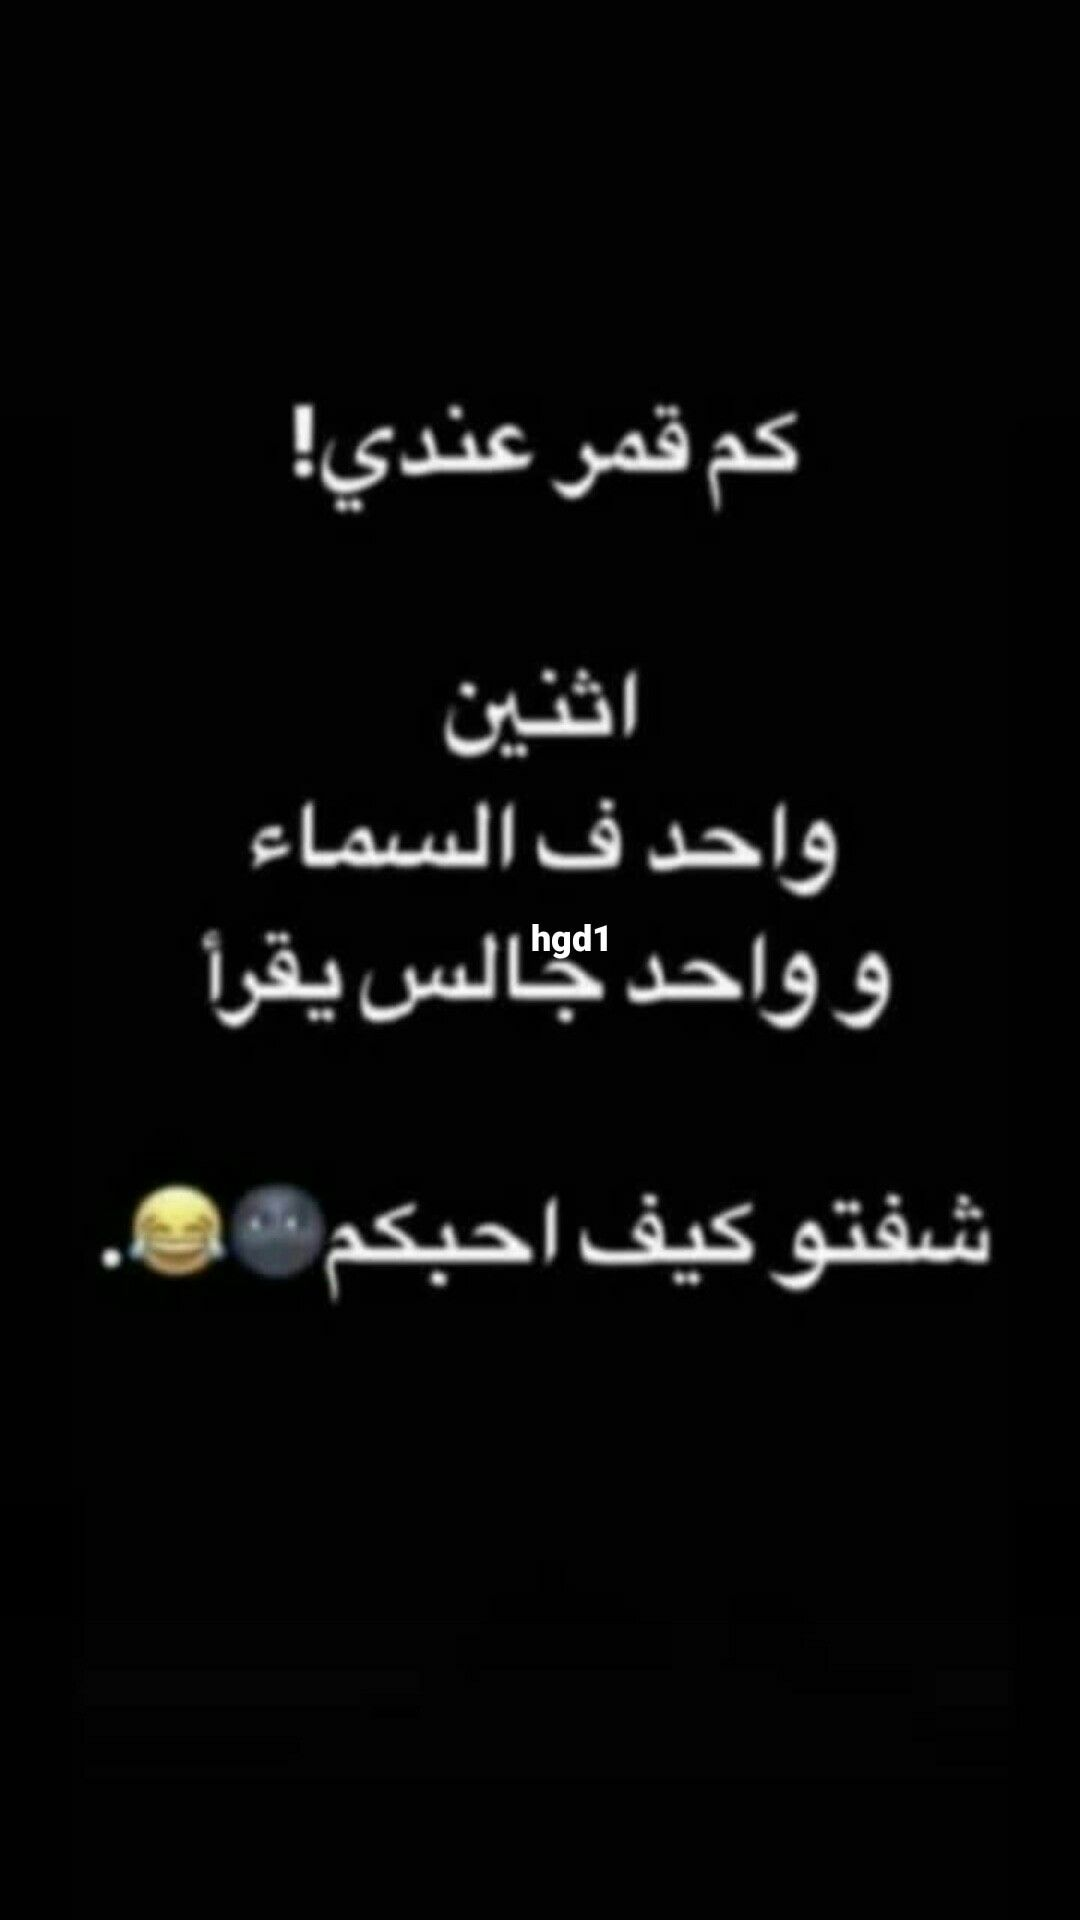 Pin By همس الليل On ضحك و وناسه Funny Study Quotes Funny Words Funny Arabic Quotes